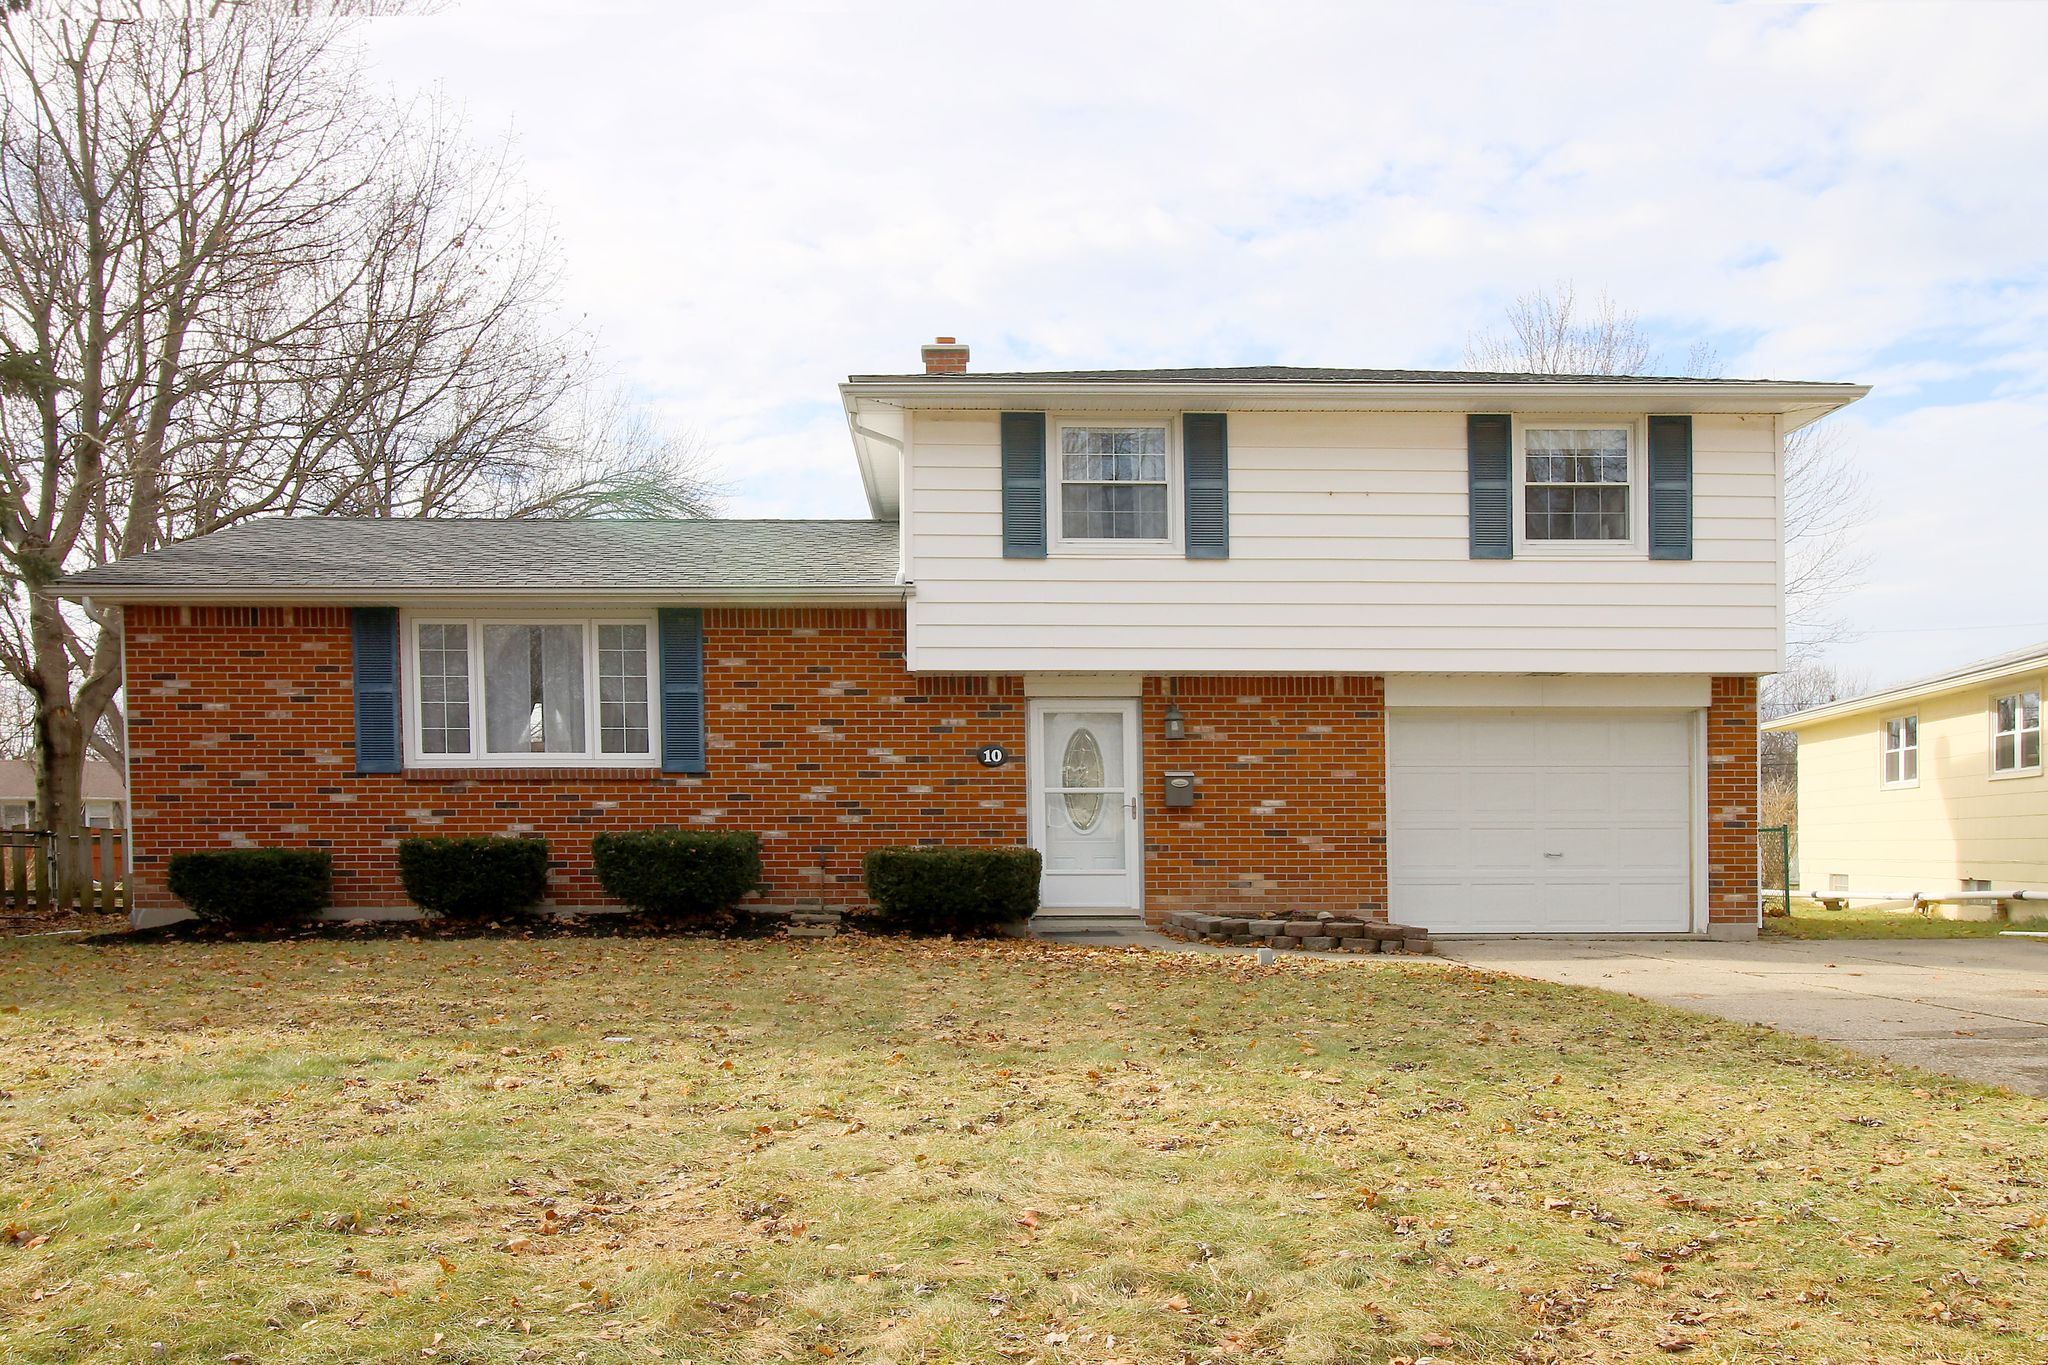 This is the Fresh Picture Of Patio Homes for Sale Amherst Ny